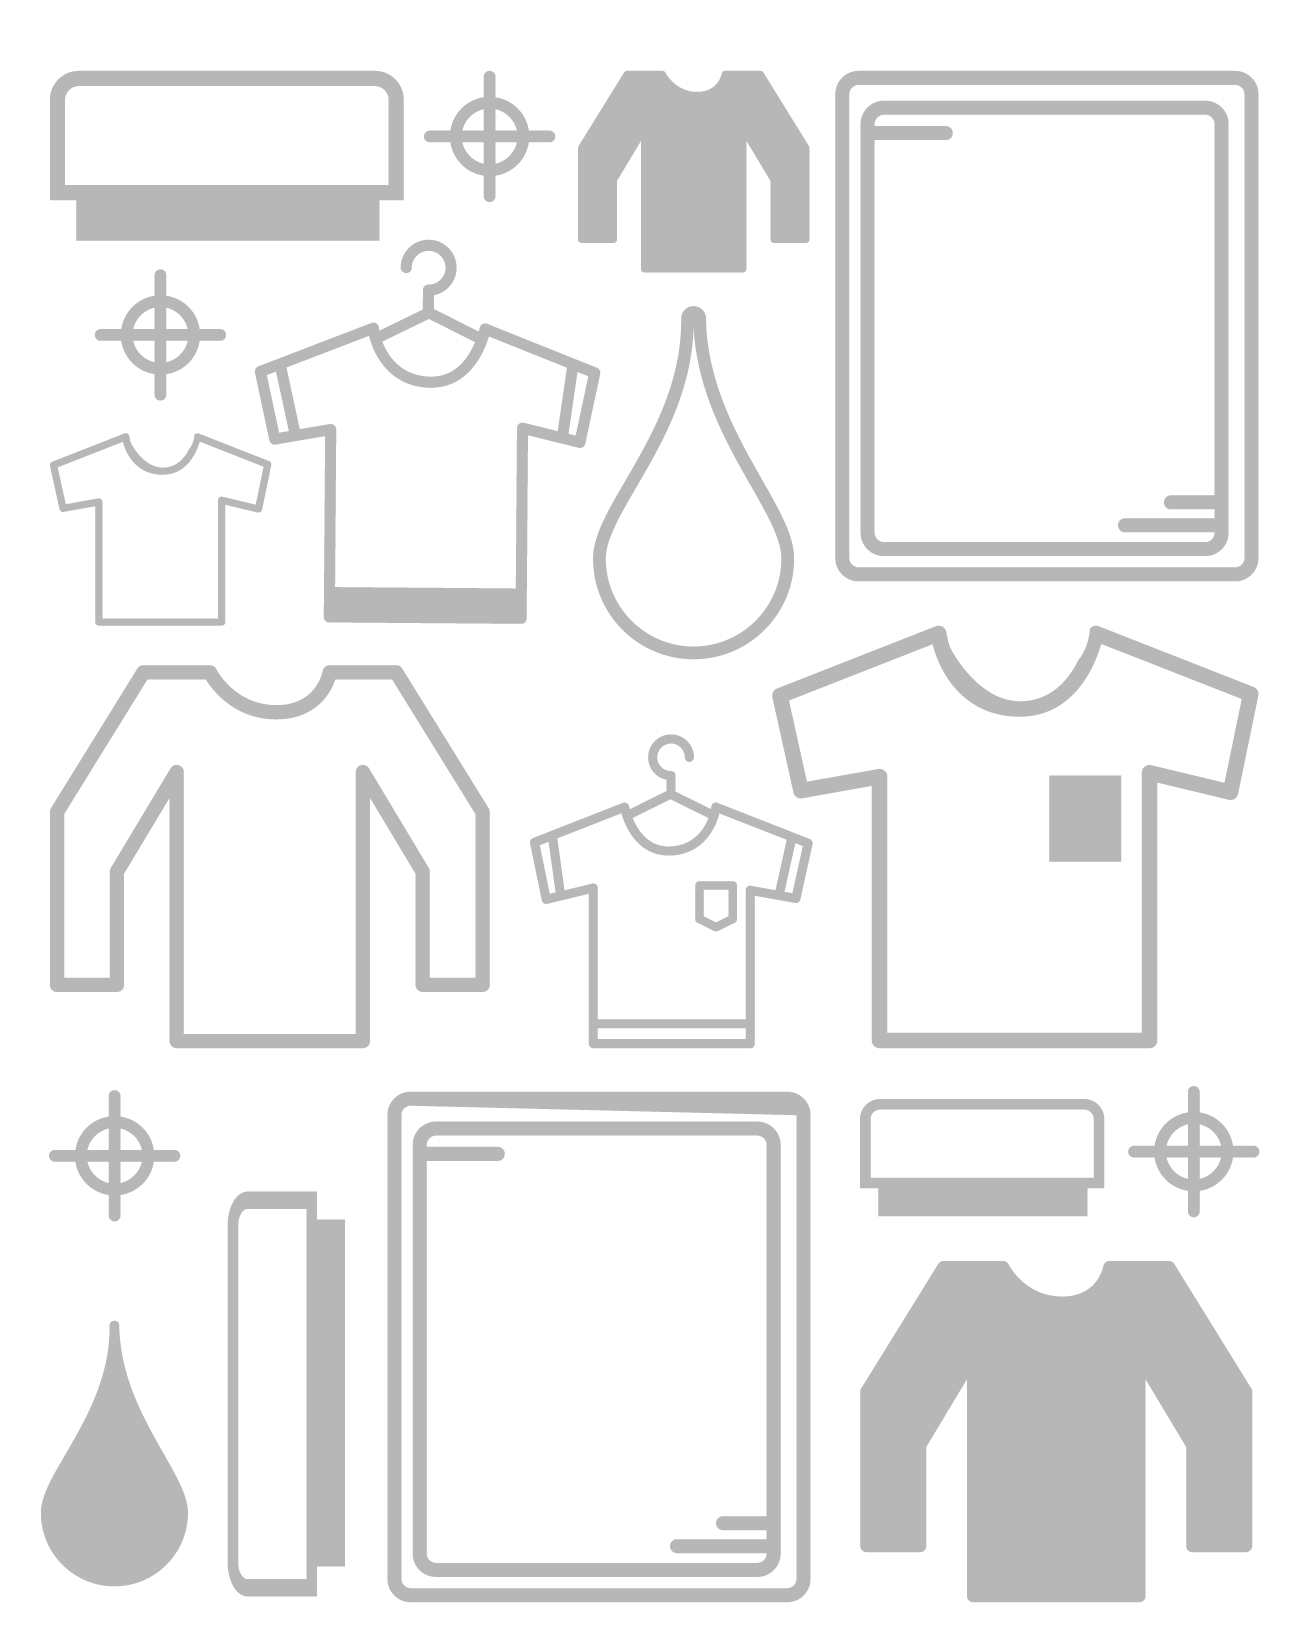 t-shirt_graphic-01.png